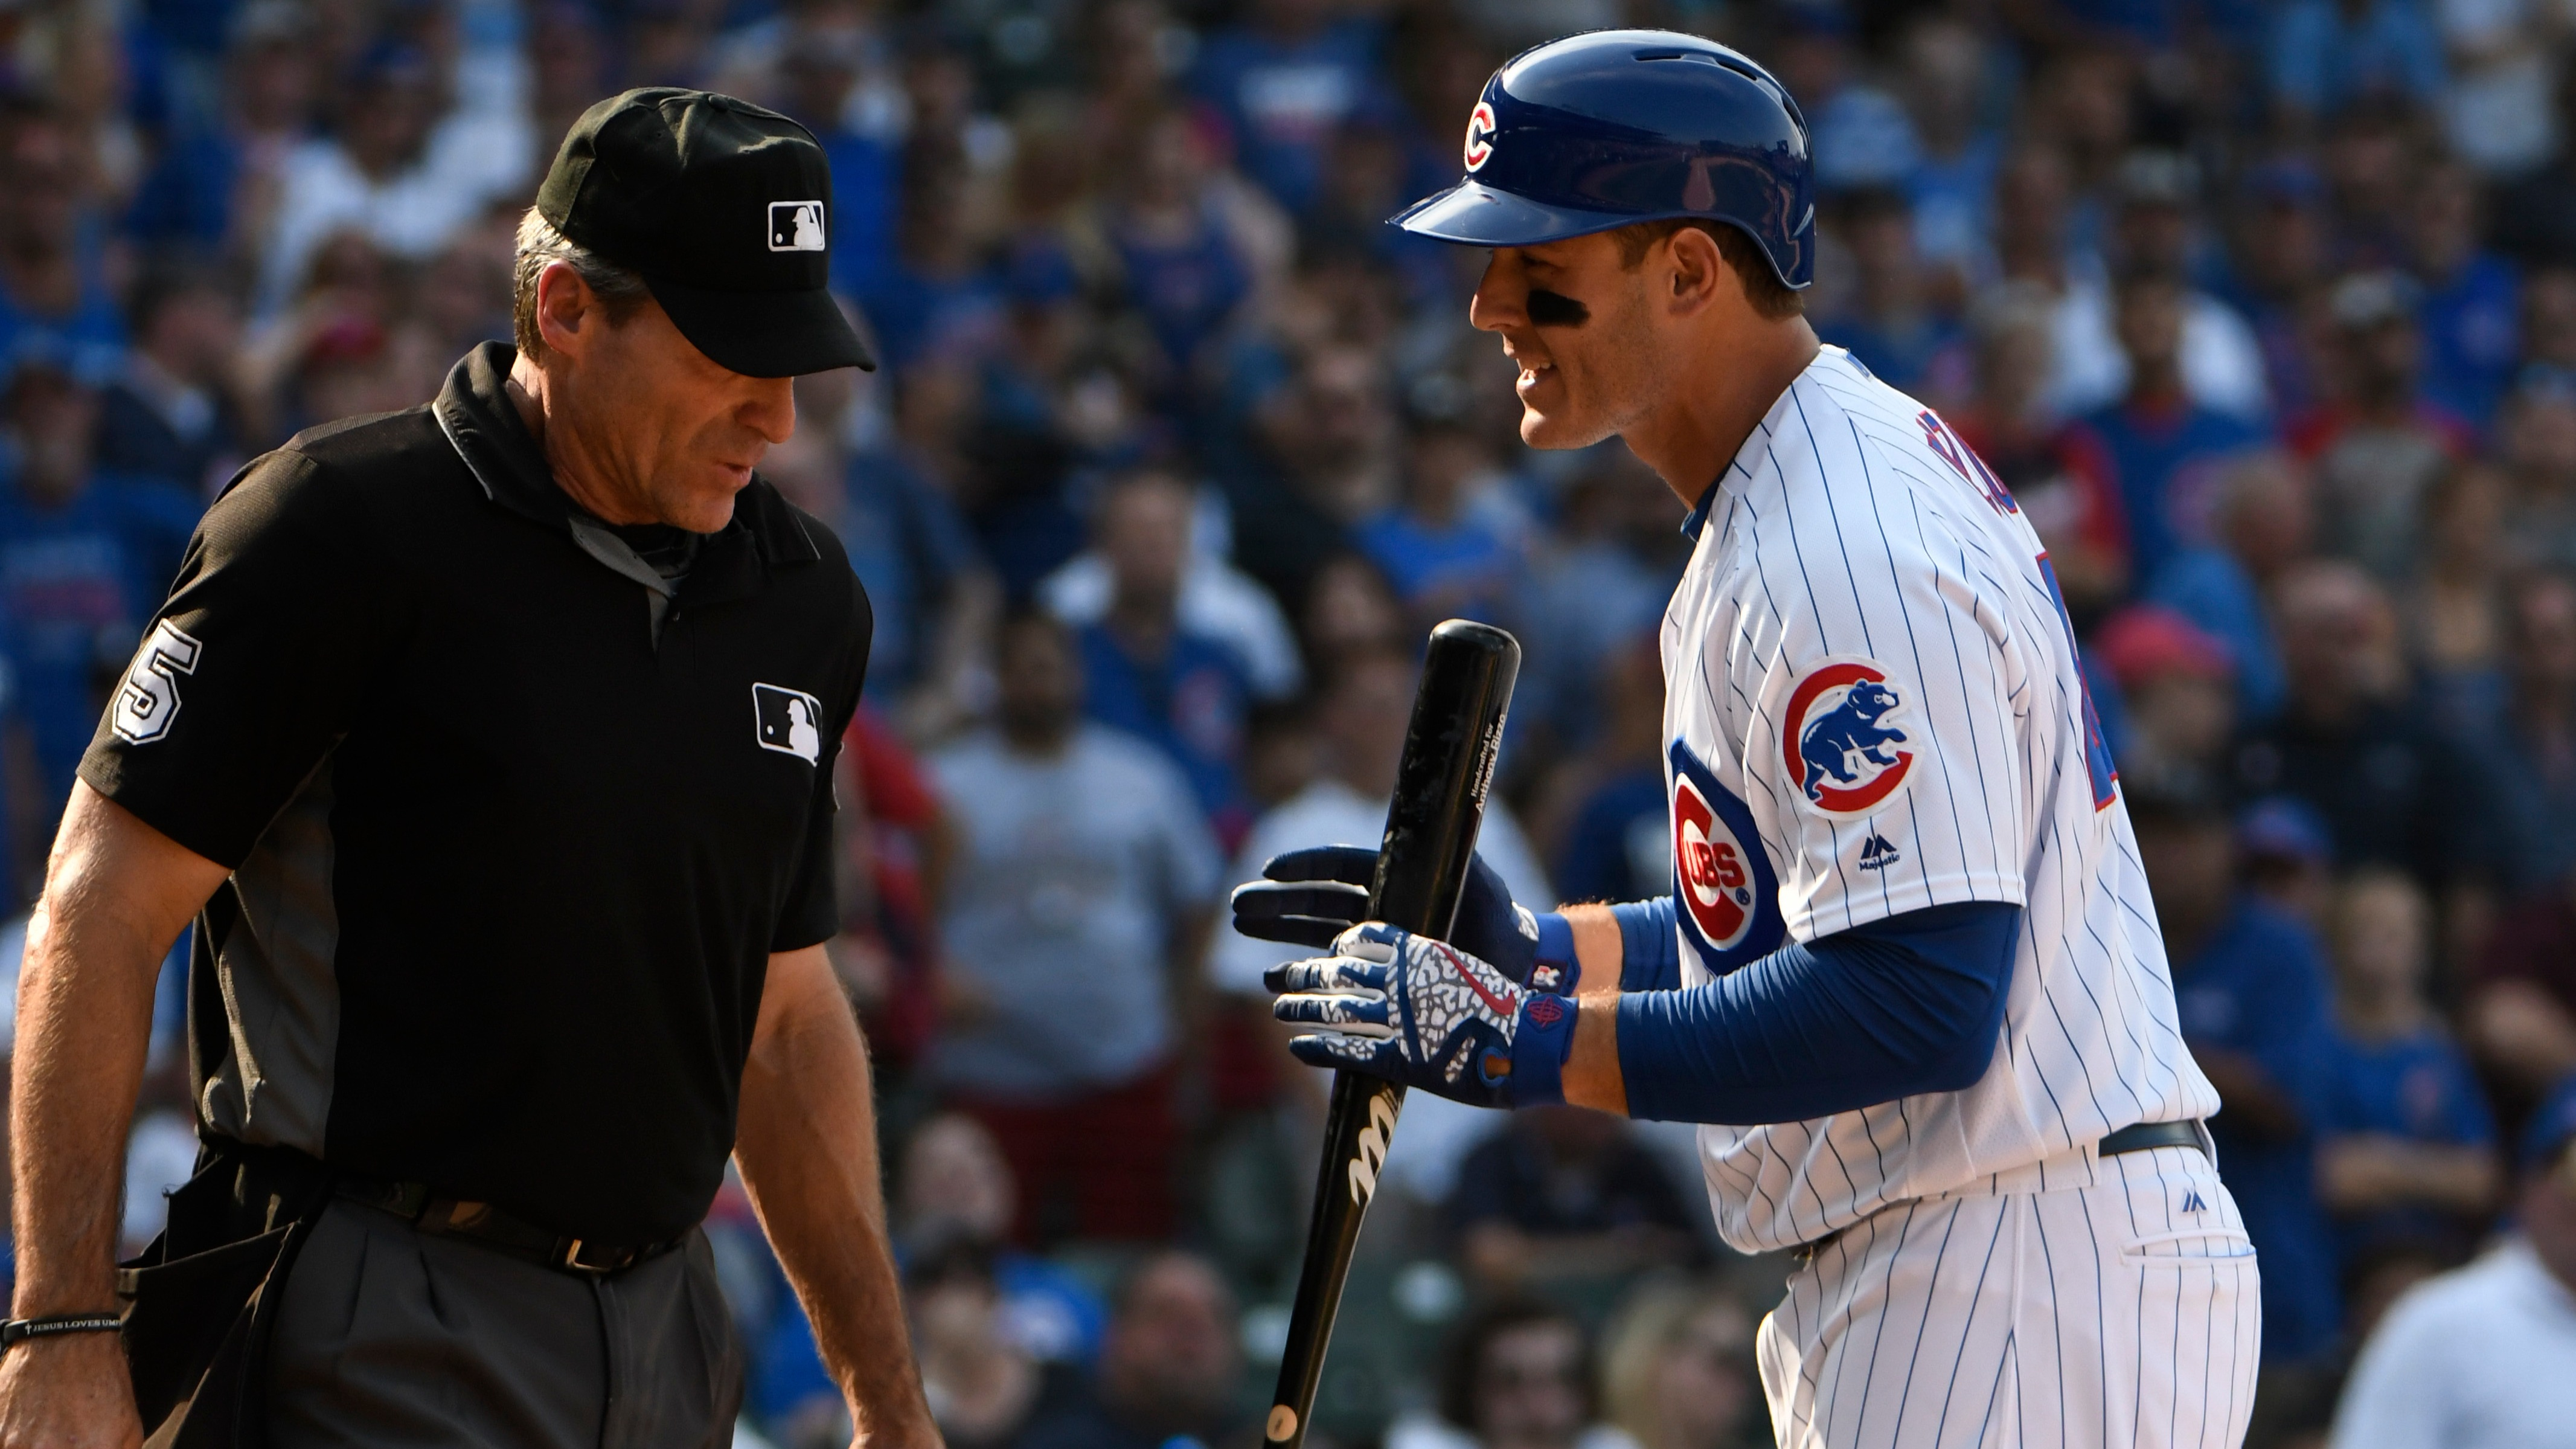 Angel Hernandez admits mistake on game-ending call on Rizzo